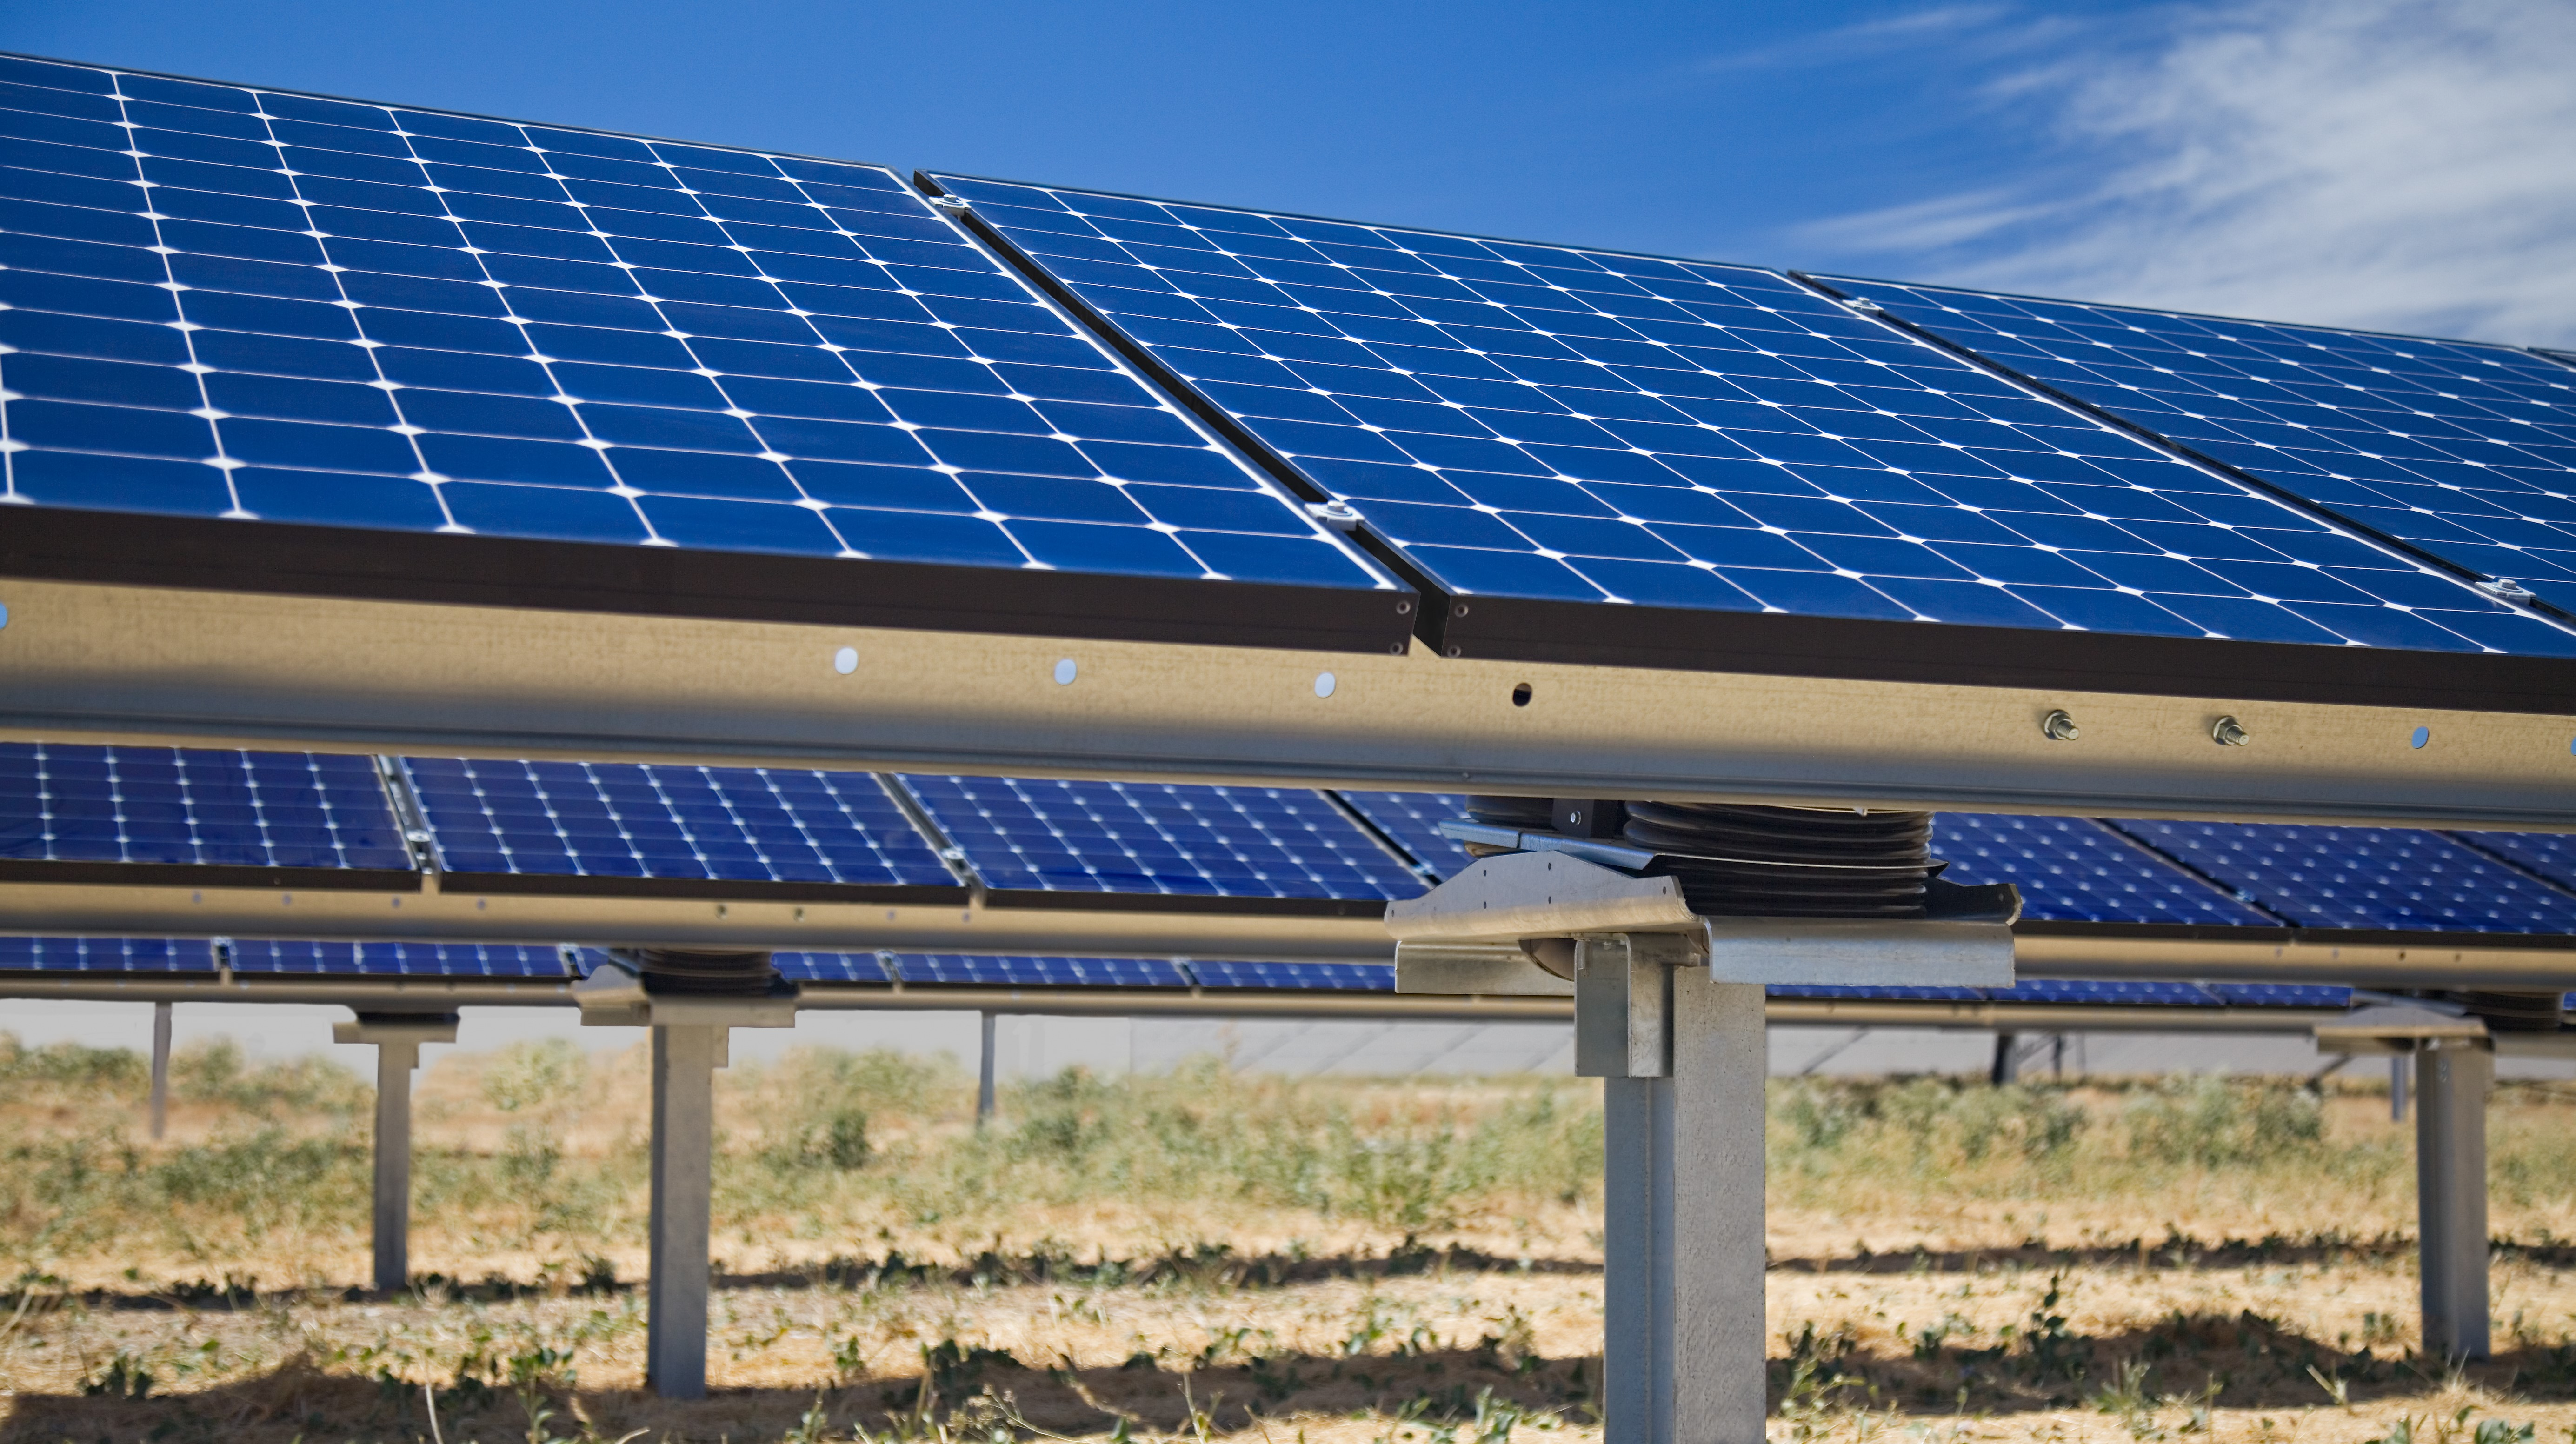 Arpa E Arpa E Awardees Pursue Unconventional Solar